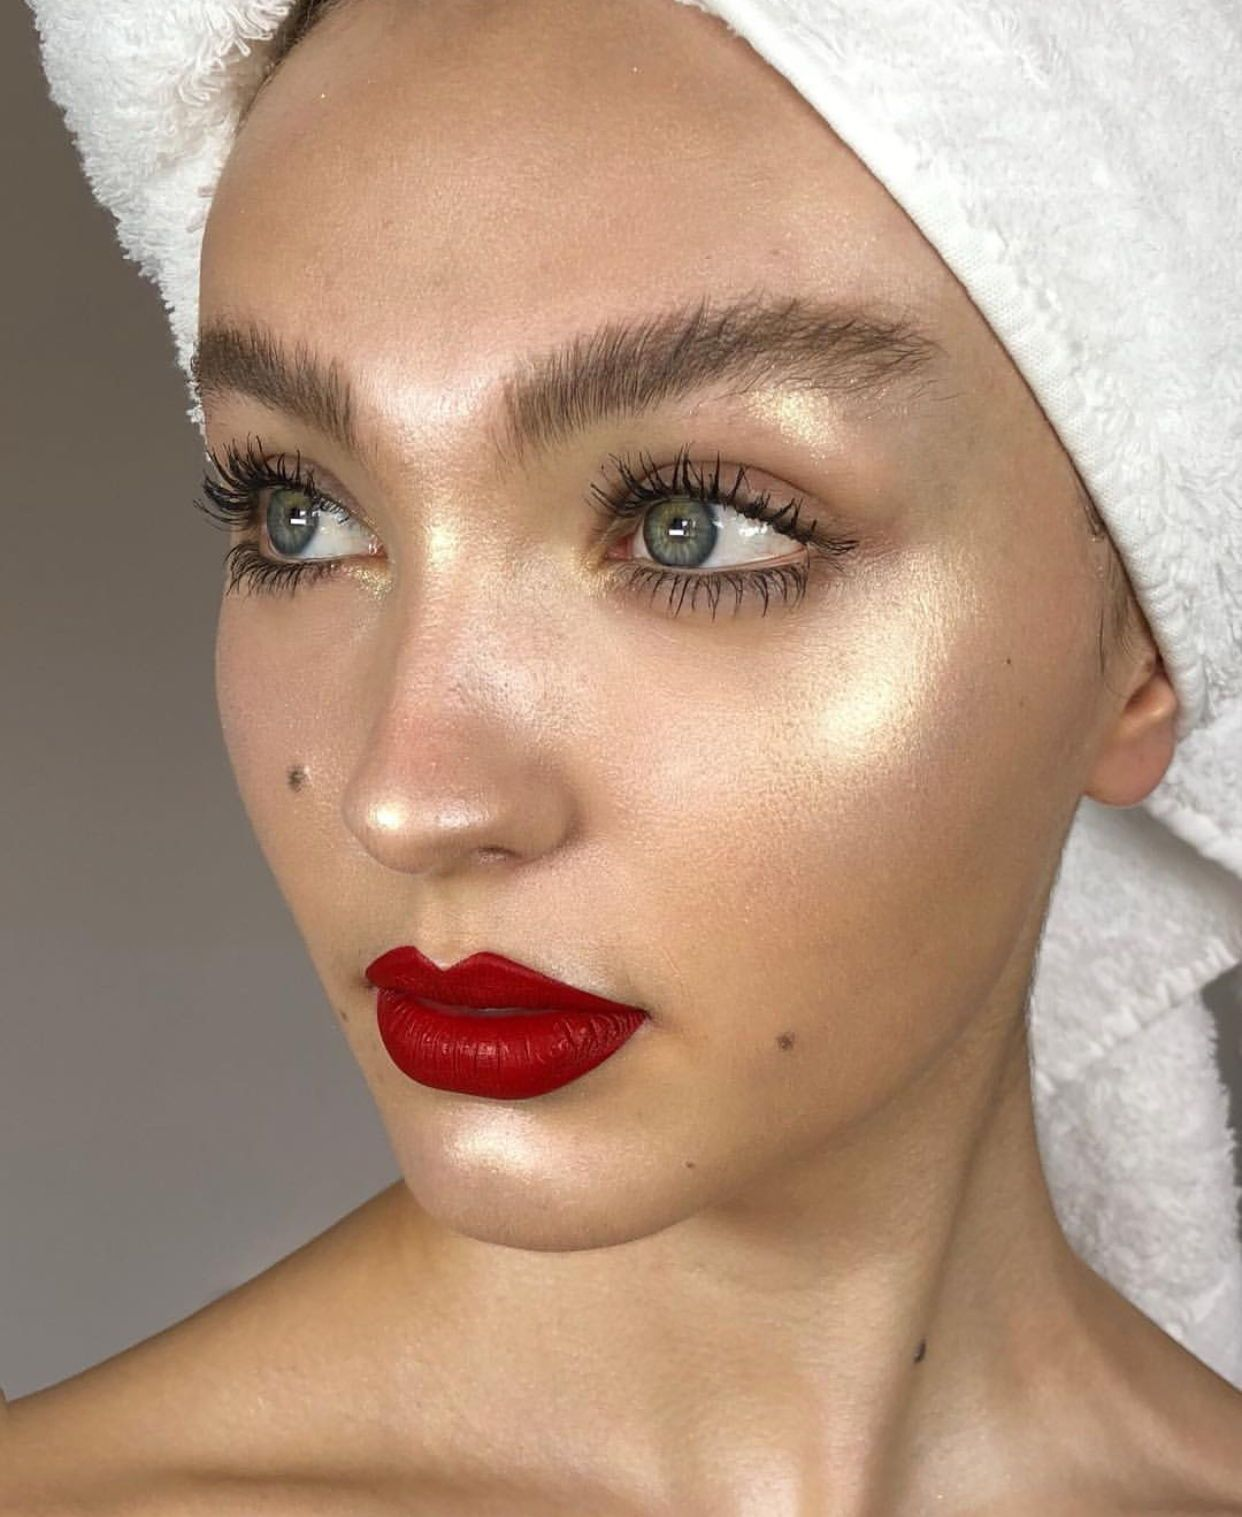 Highlighted skin, natural brushed up eyebrows and red